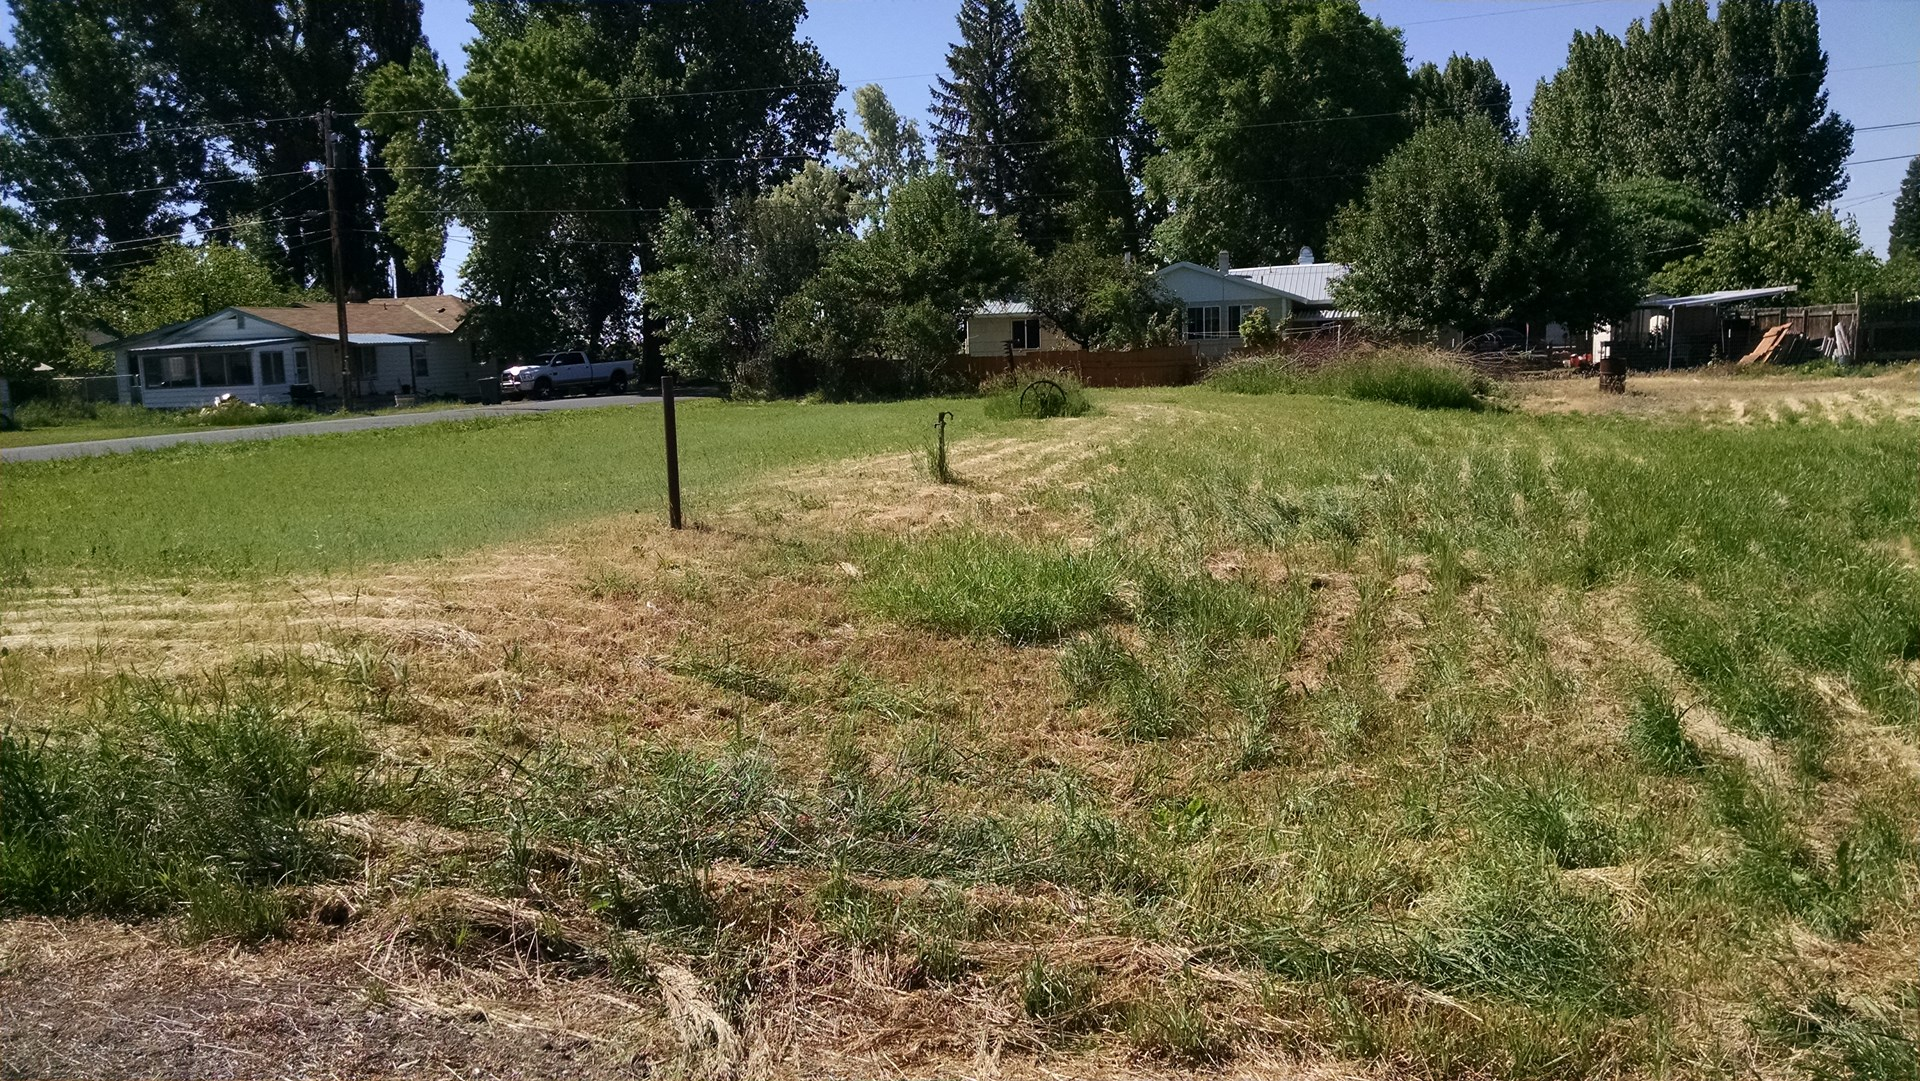 BURNS, OREGON - GOOD SIZE RESIDENTIAL LOT WITH UTILITIES